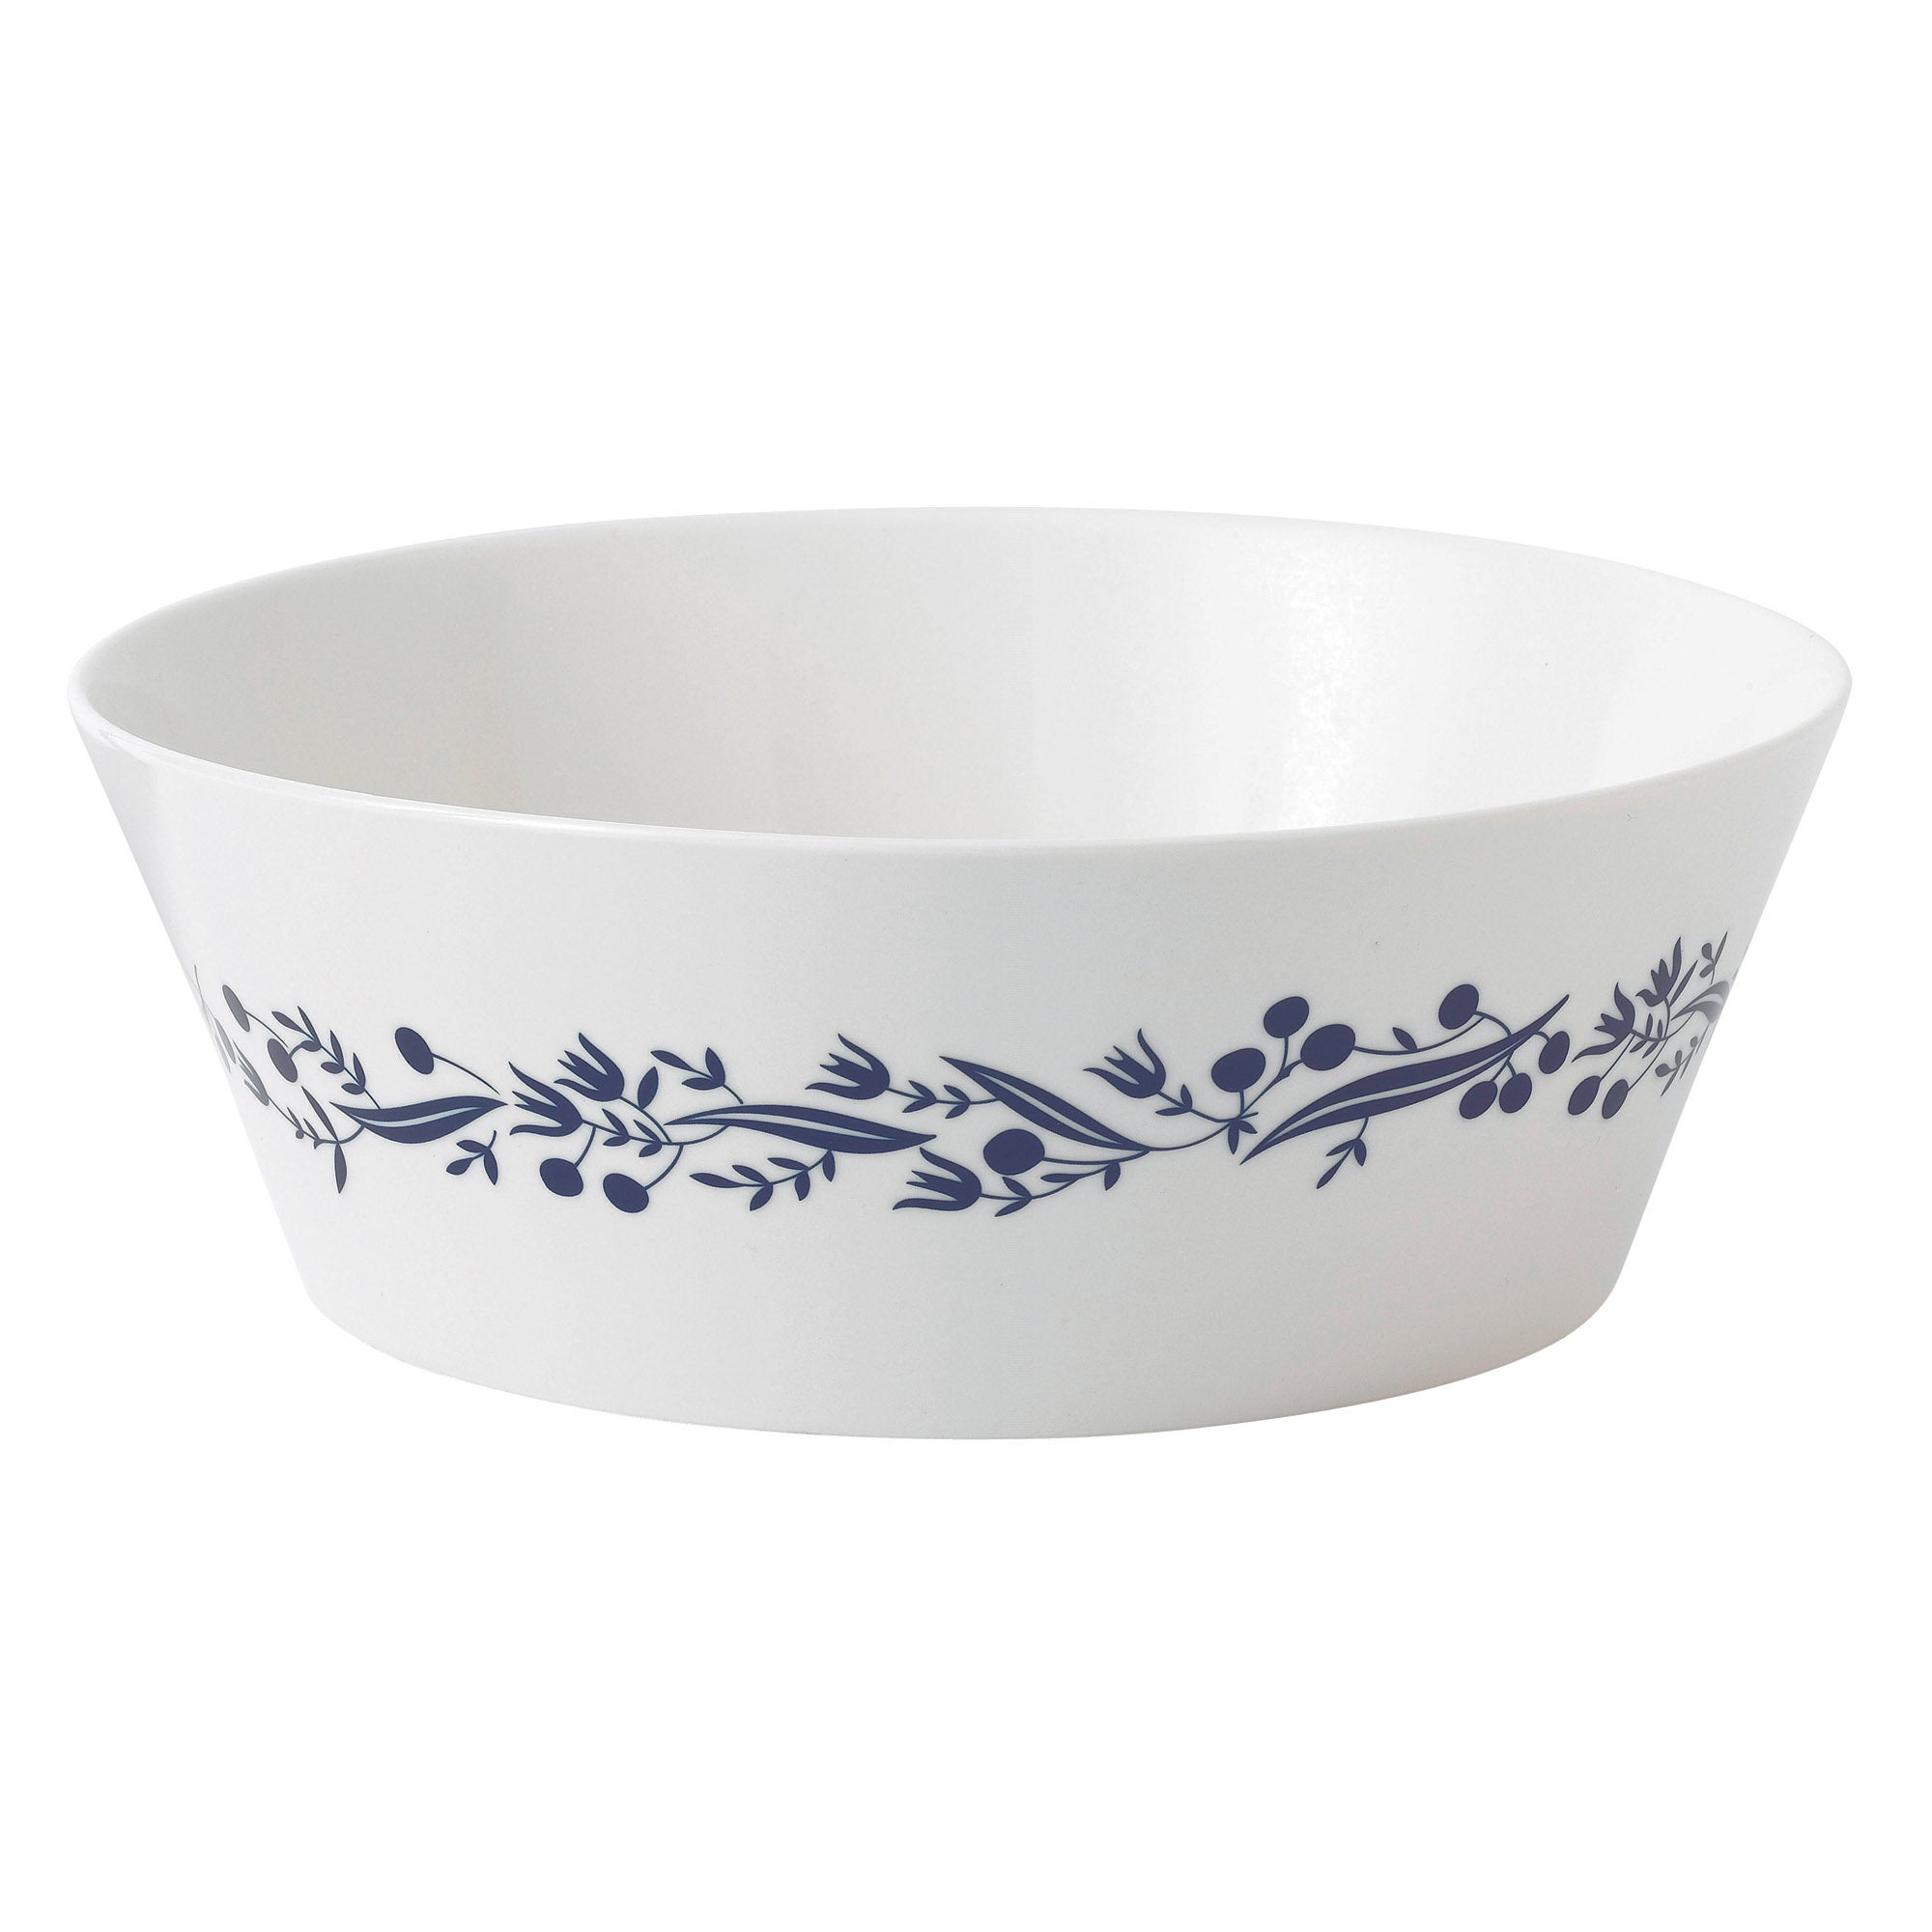 Royal Doulton Fable Collection Garland Serving Bowl